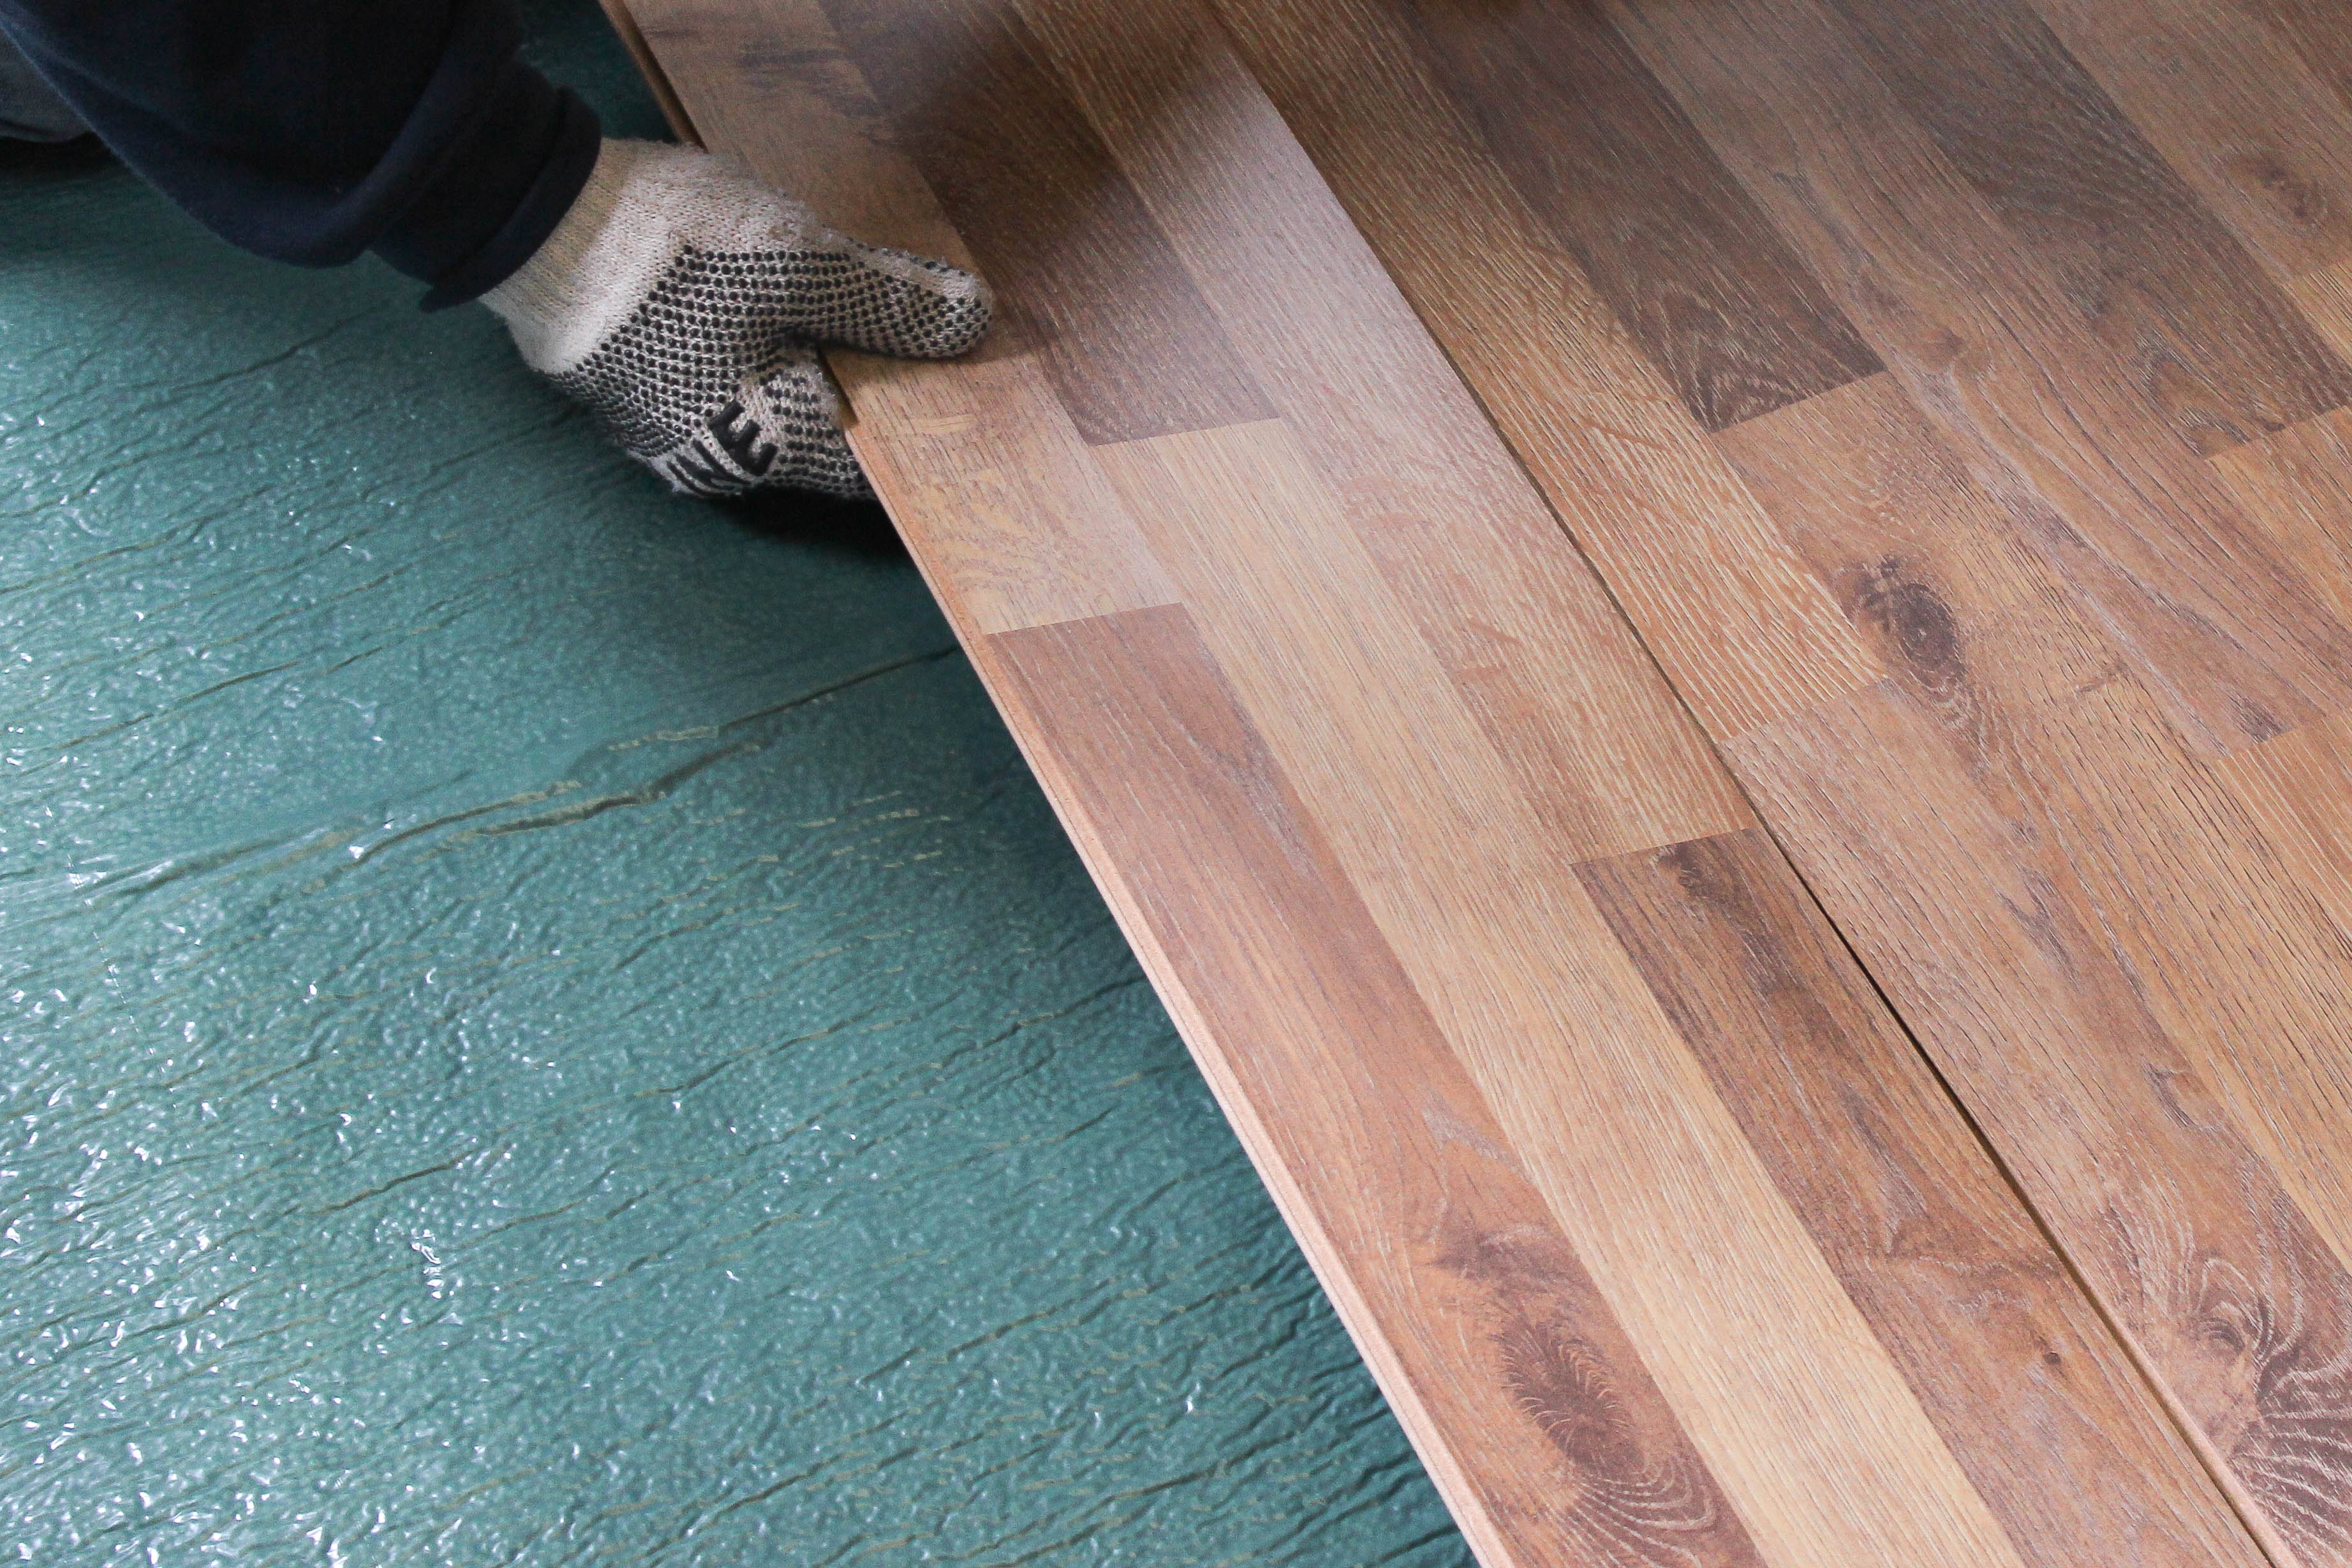 How does laminate flooring click together?